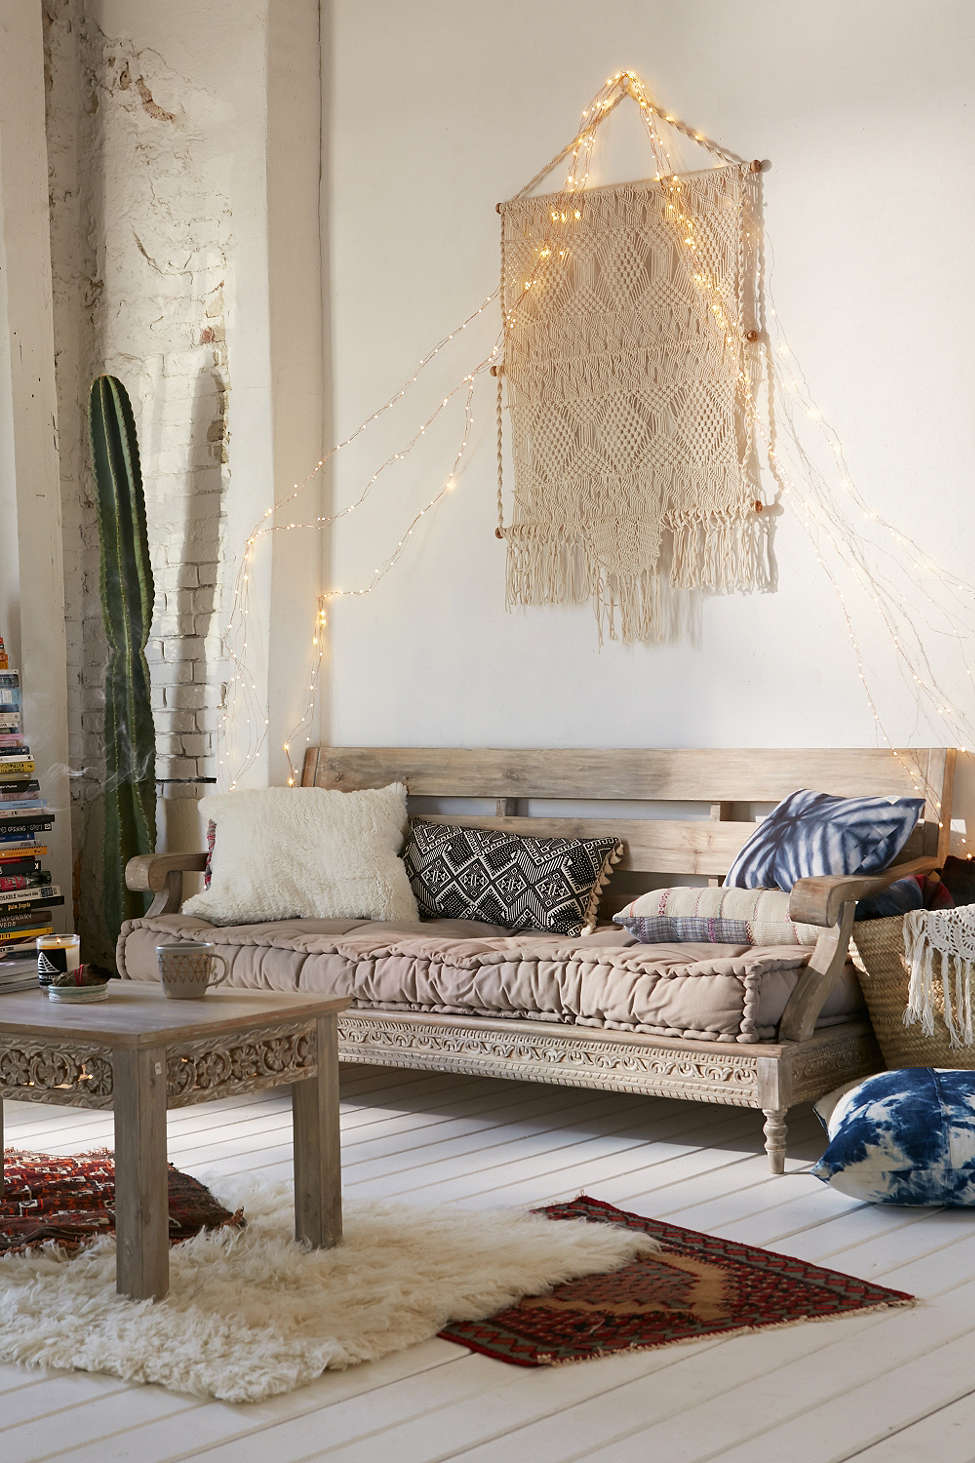 Interior Design Dreaming: The Daybed (plus so many more gorgeous options!) - Magical Thinking Bohemian Daybed - Outdoor Patio Deck Design